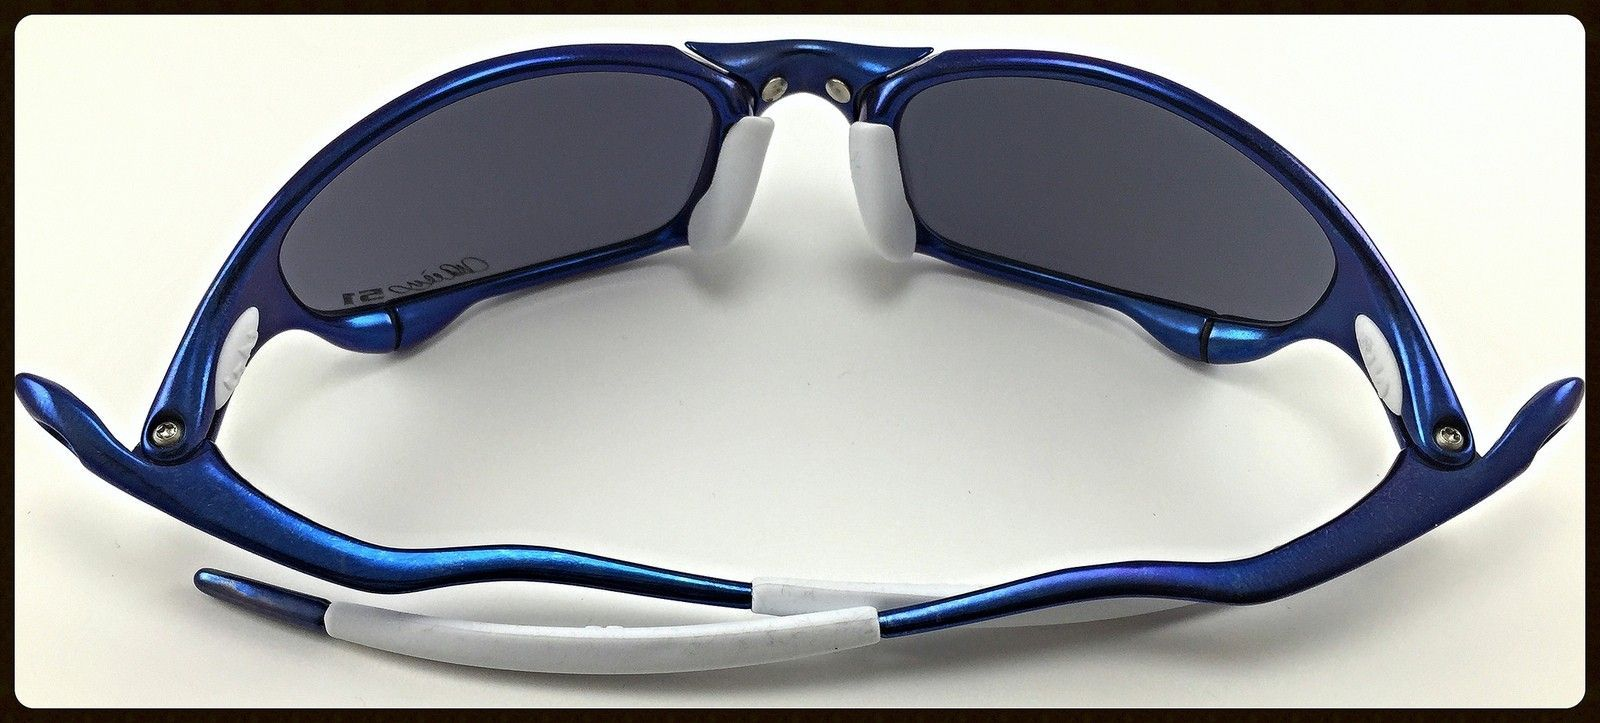 Blue Anodized Polished Juliet - Ichiro Style - 51 Anodized Blue Juliet with OO Blue Ichiro Lenses and White OEM Rubbers-3.jpg